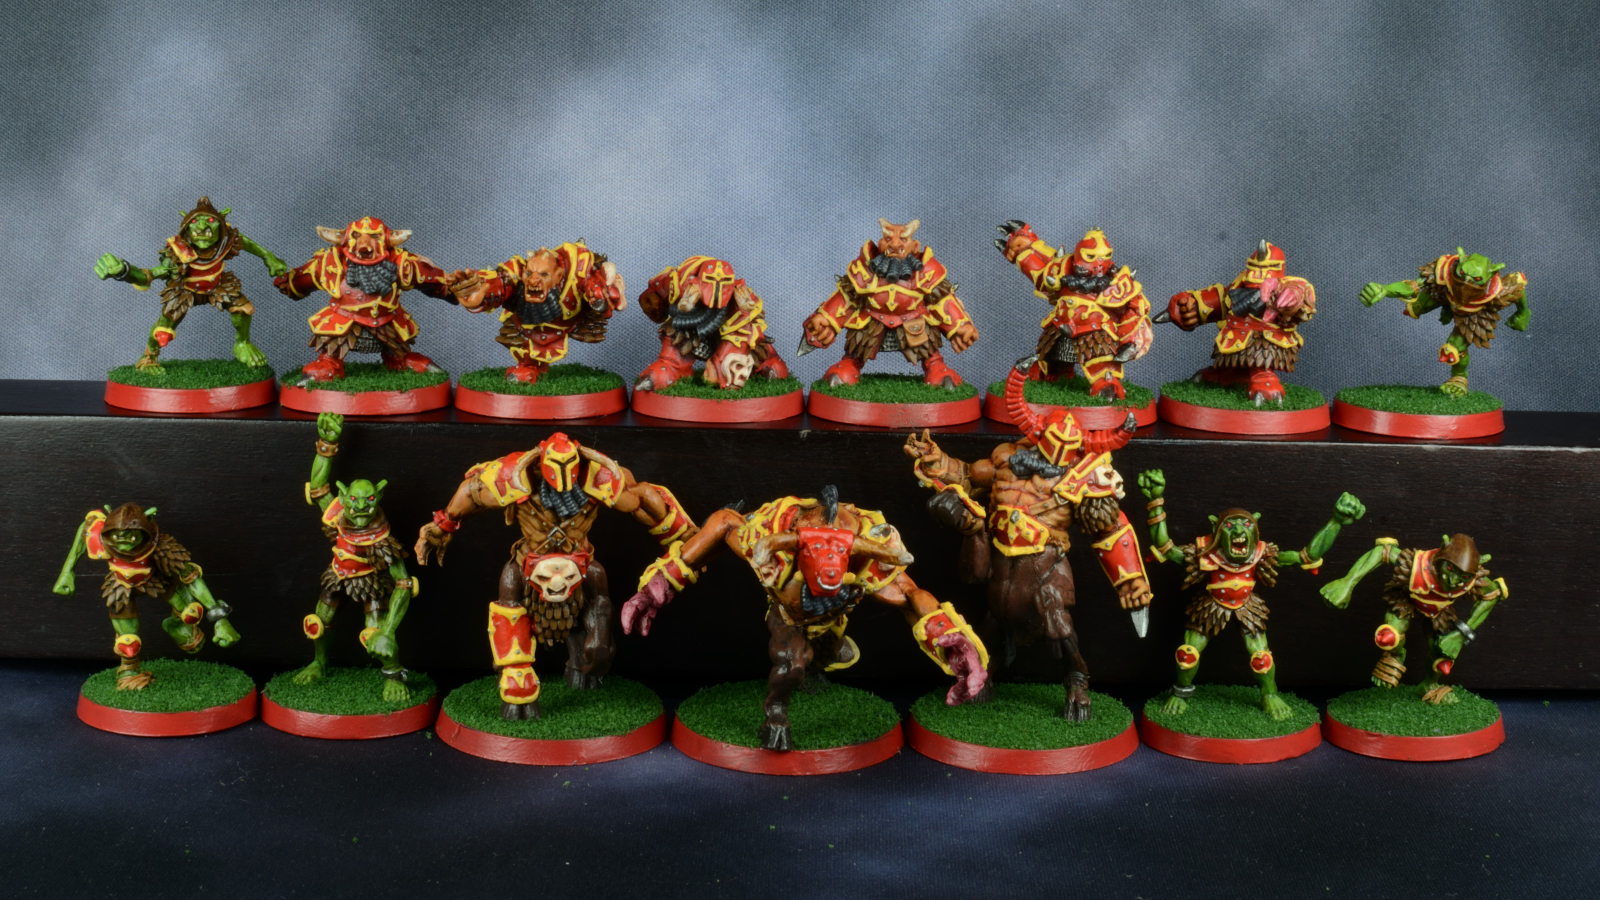 Another Chaos Dwarves Team 30